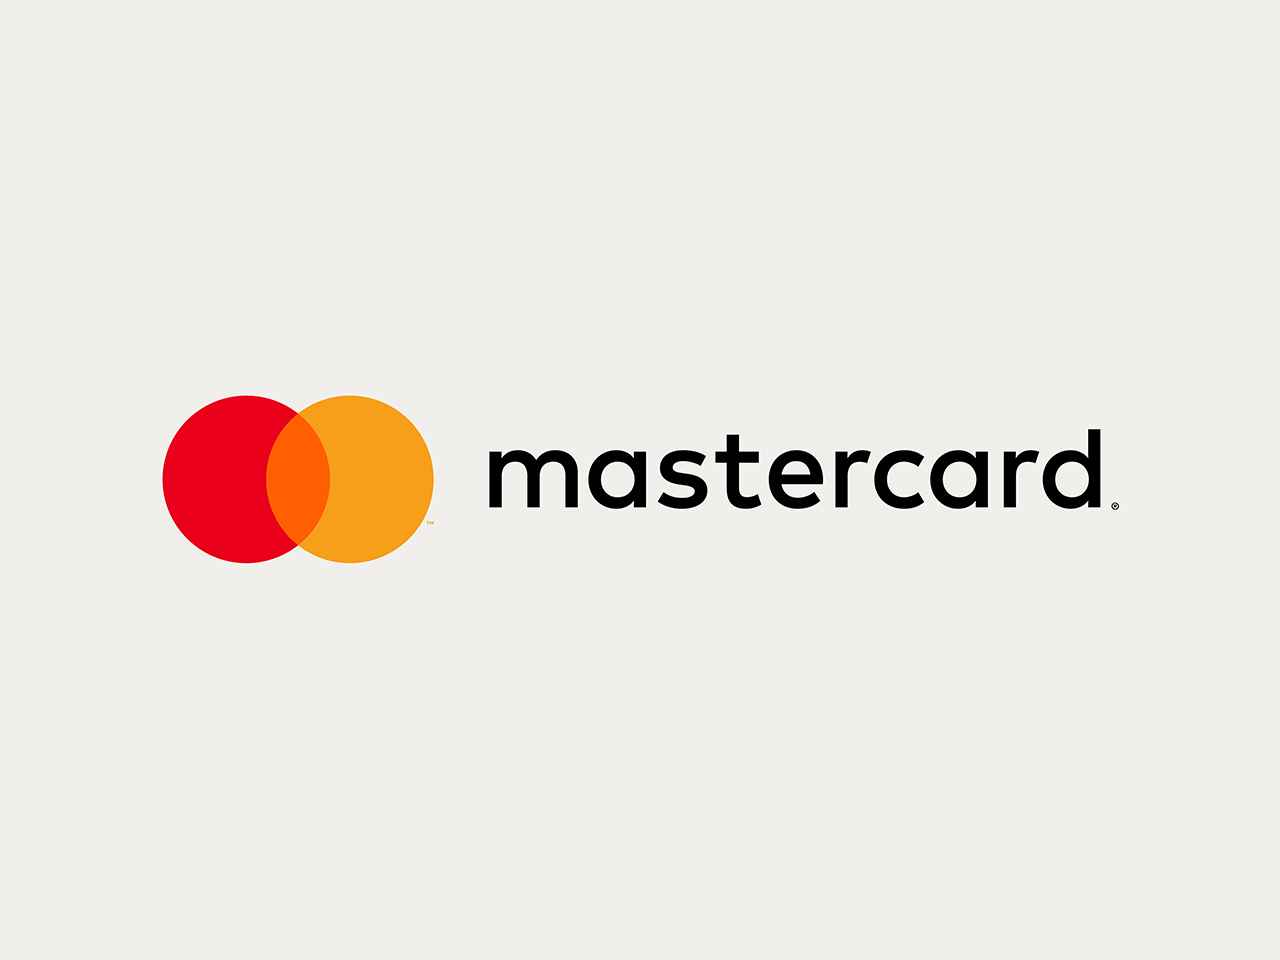 Mastercard identity (2016) - Fonts In Use